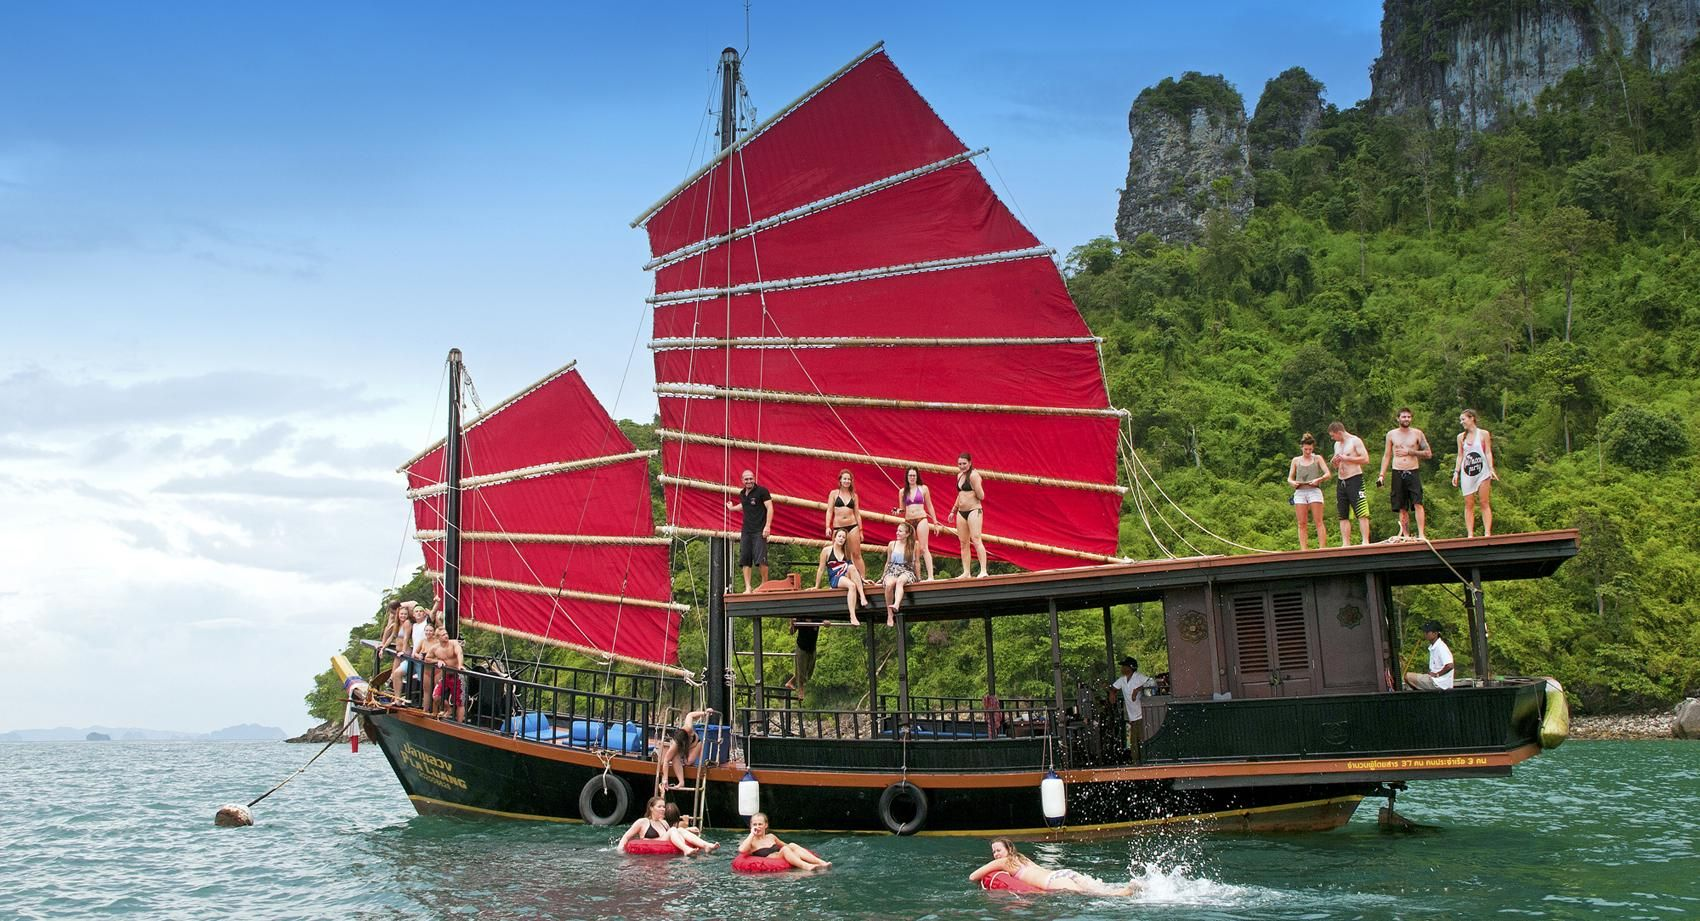 Book The Most Popular Cruise By Wooden Siamese Junk Boat Out To The 5 Islands In Krabi Thailand Www Krabisunsetc 4 Island Tour Krabi Sunset Cruise Island Tour